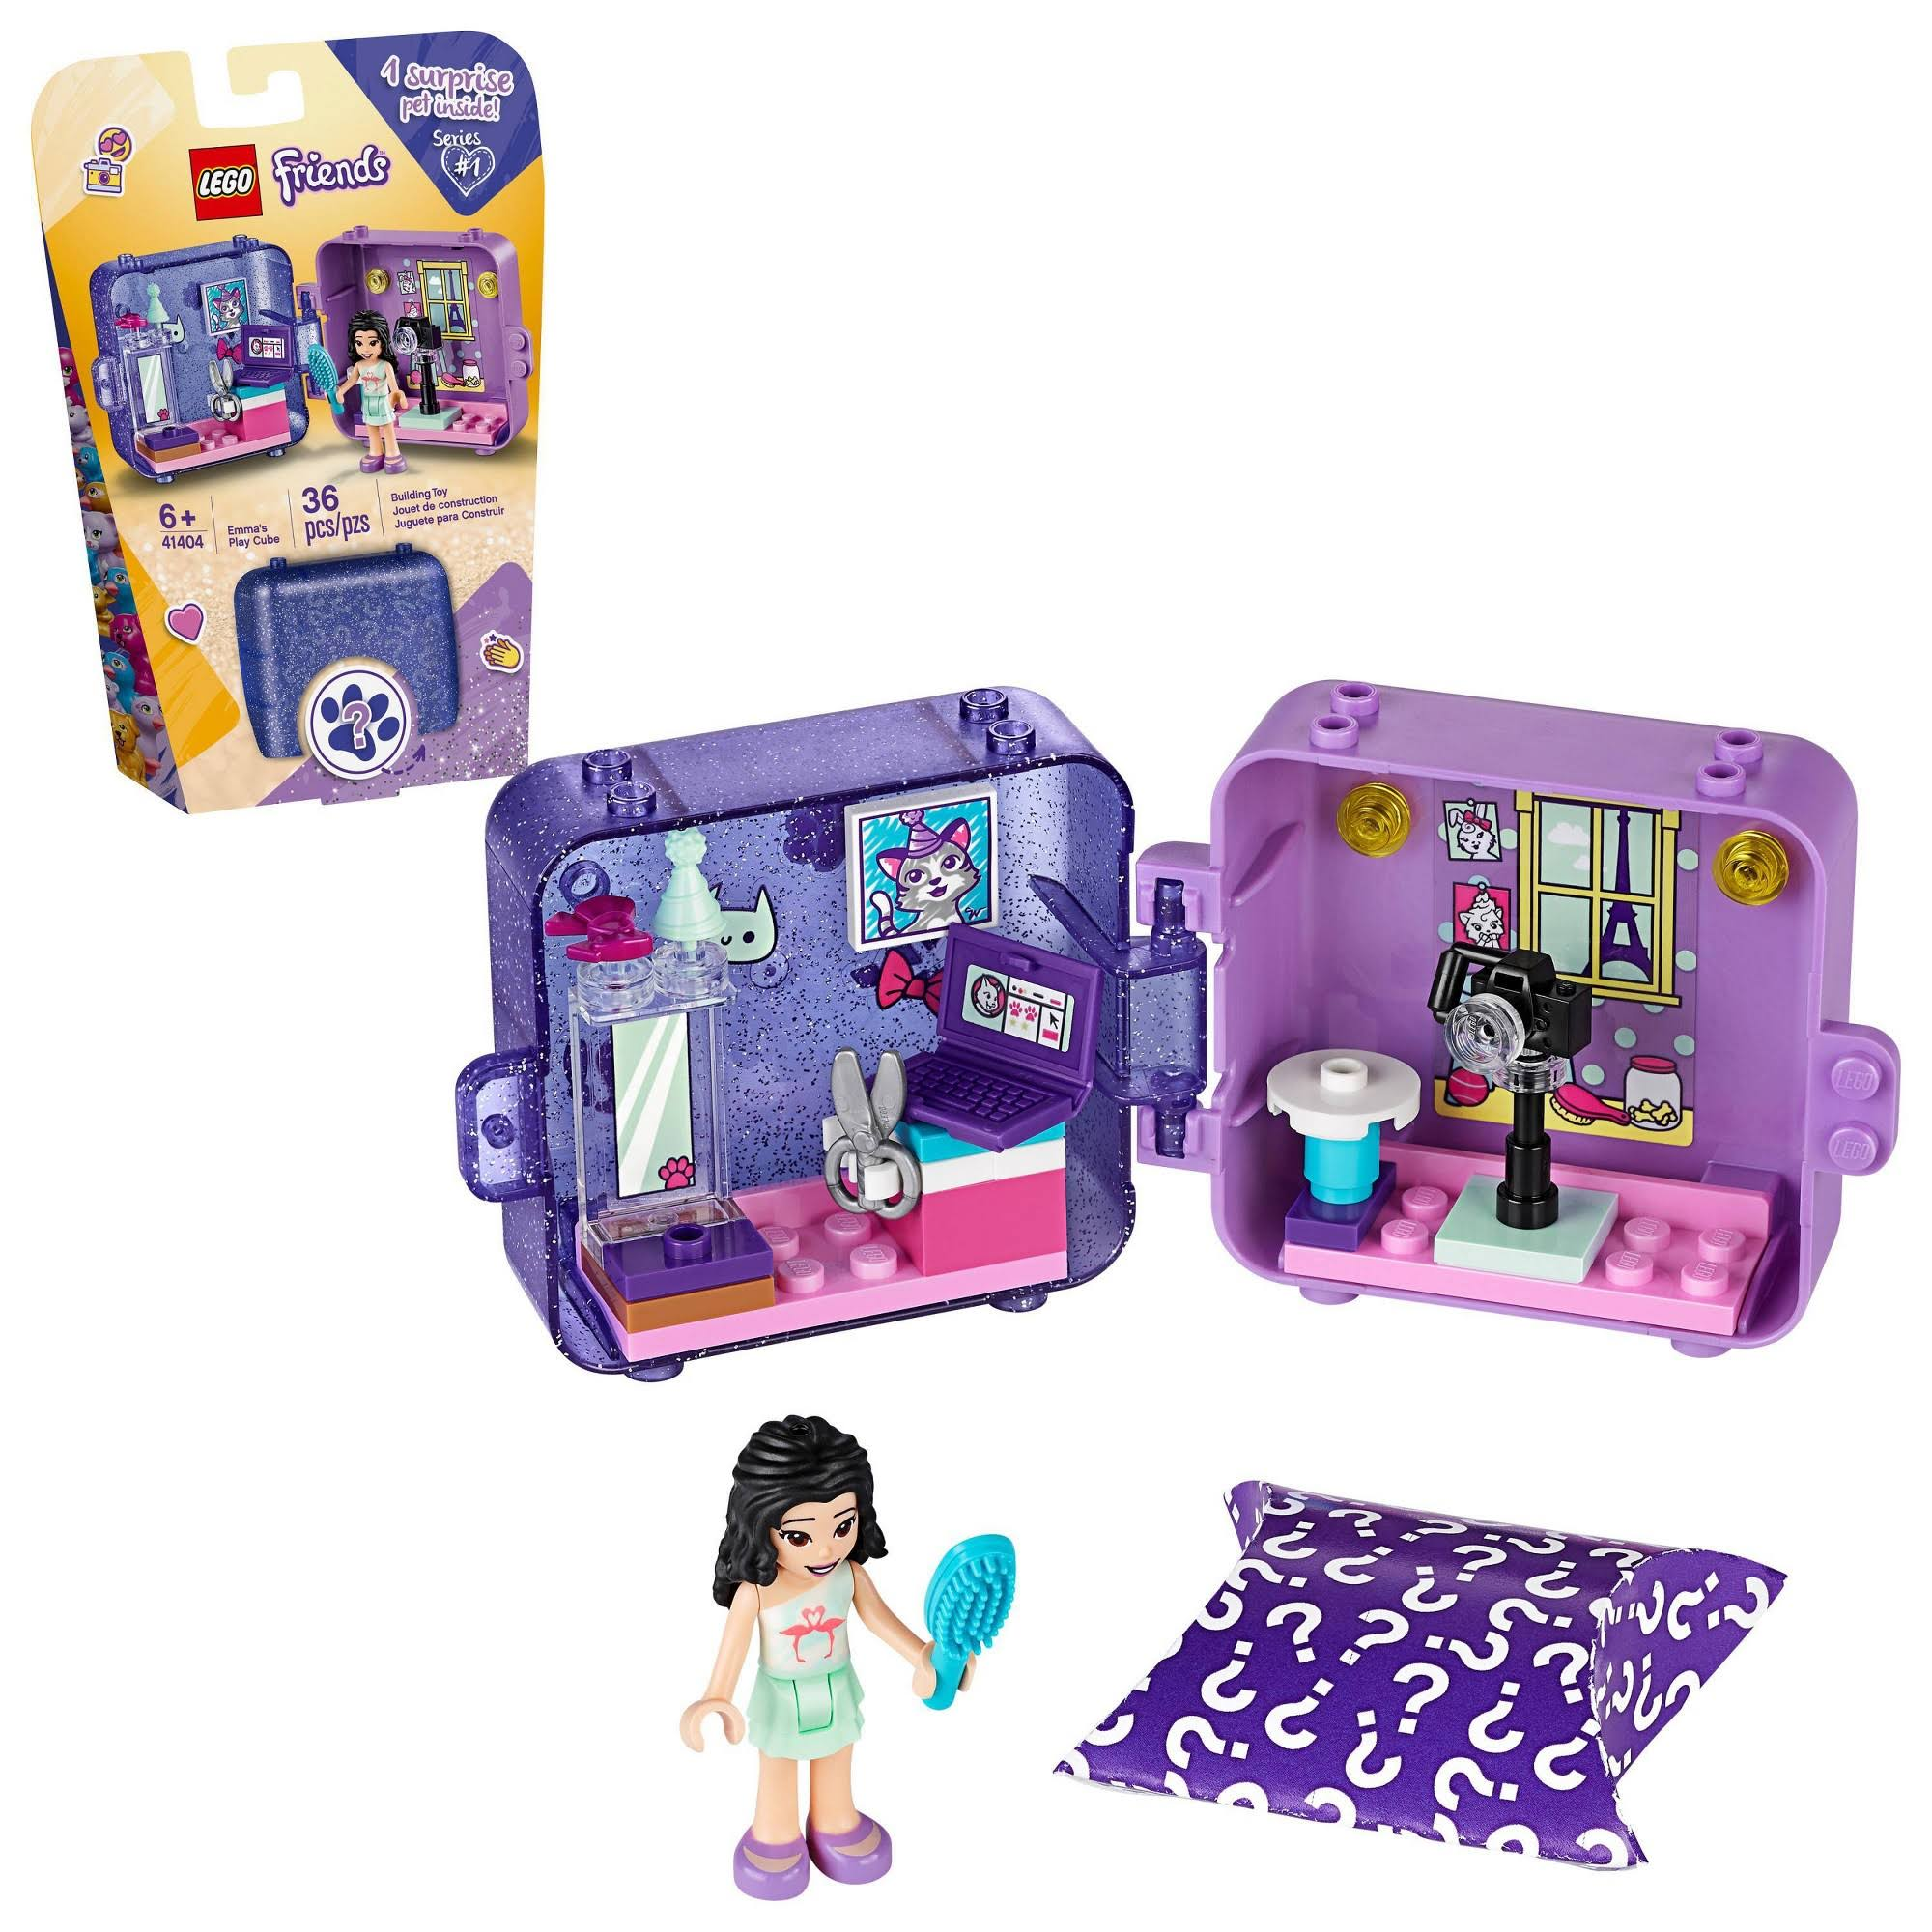 Lego Friends - Emma's Play Cube 41404